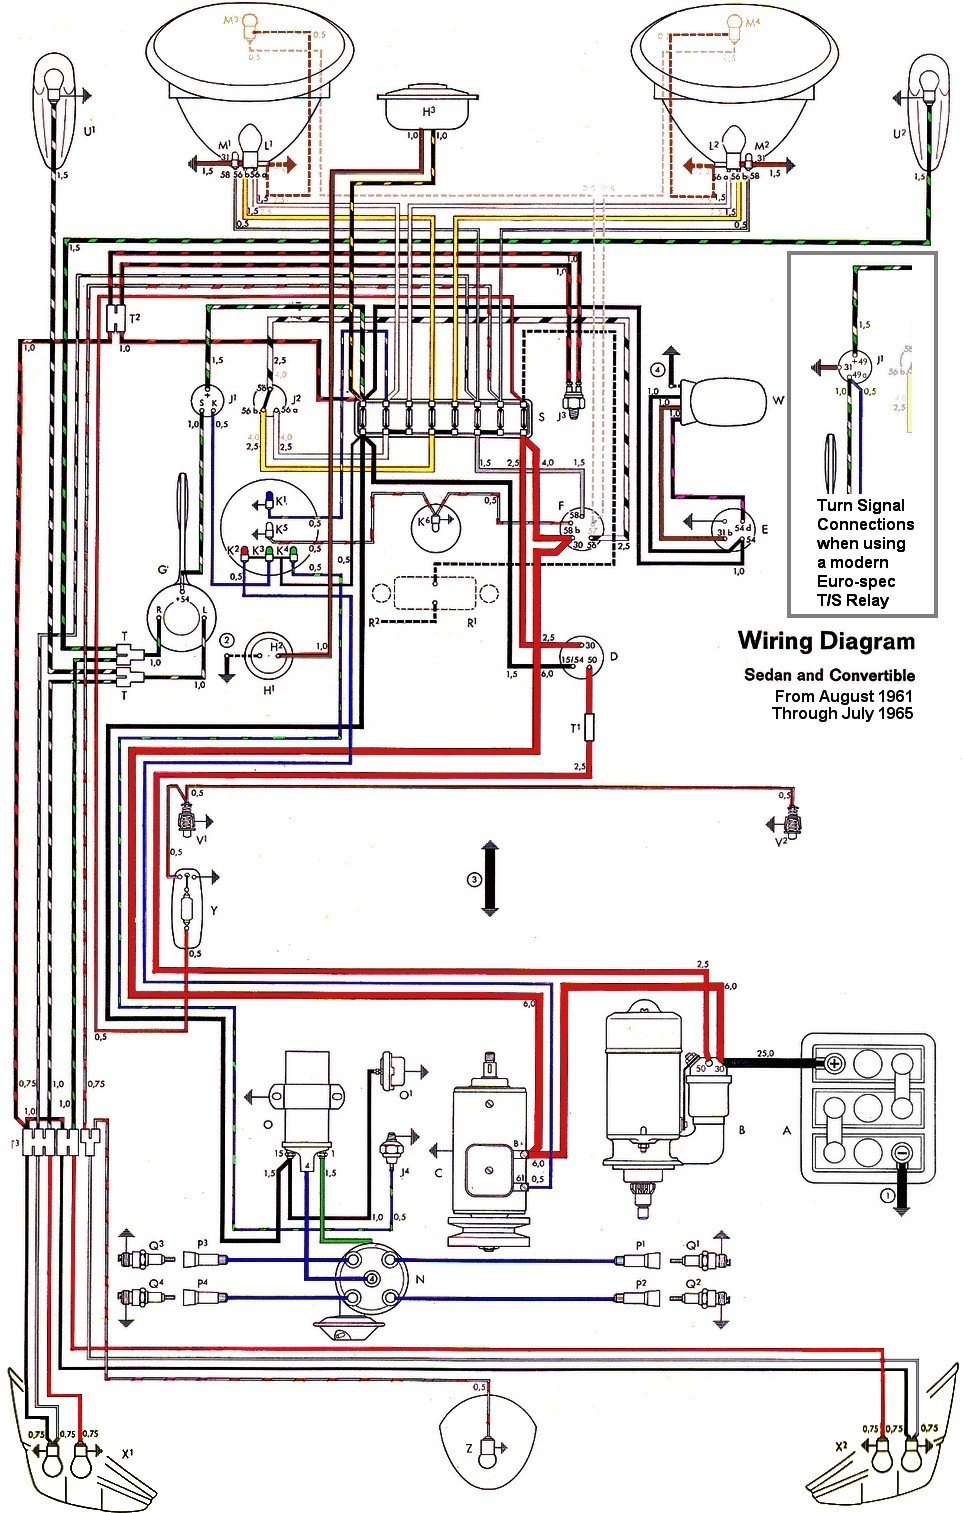 bug_62 65withinset wiring diagram vw beetle sedan and convertible 1961 1965 vw vw beach buggy wiring diagram at creativeand.co